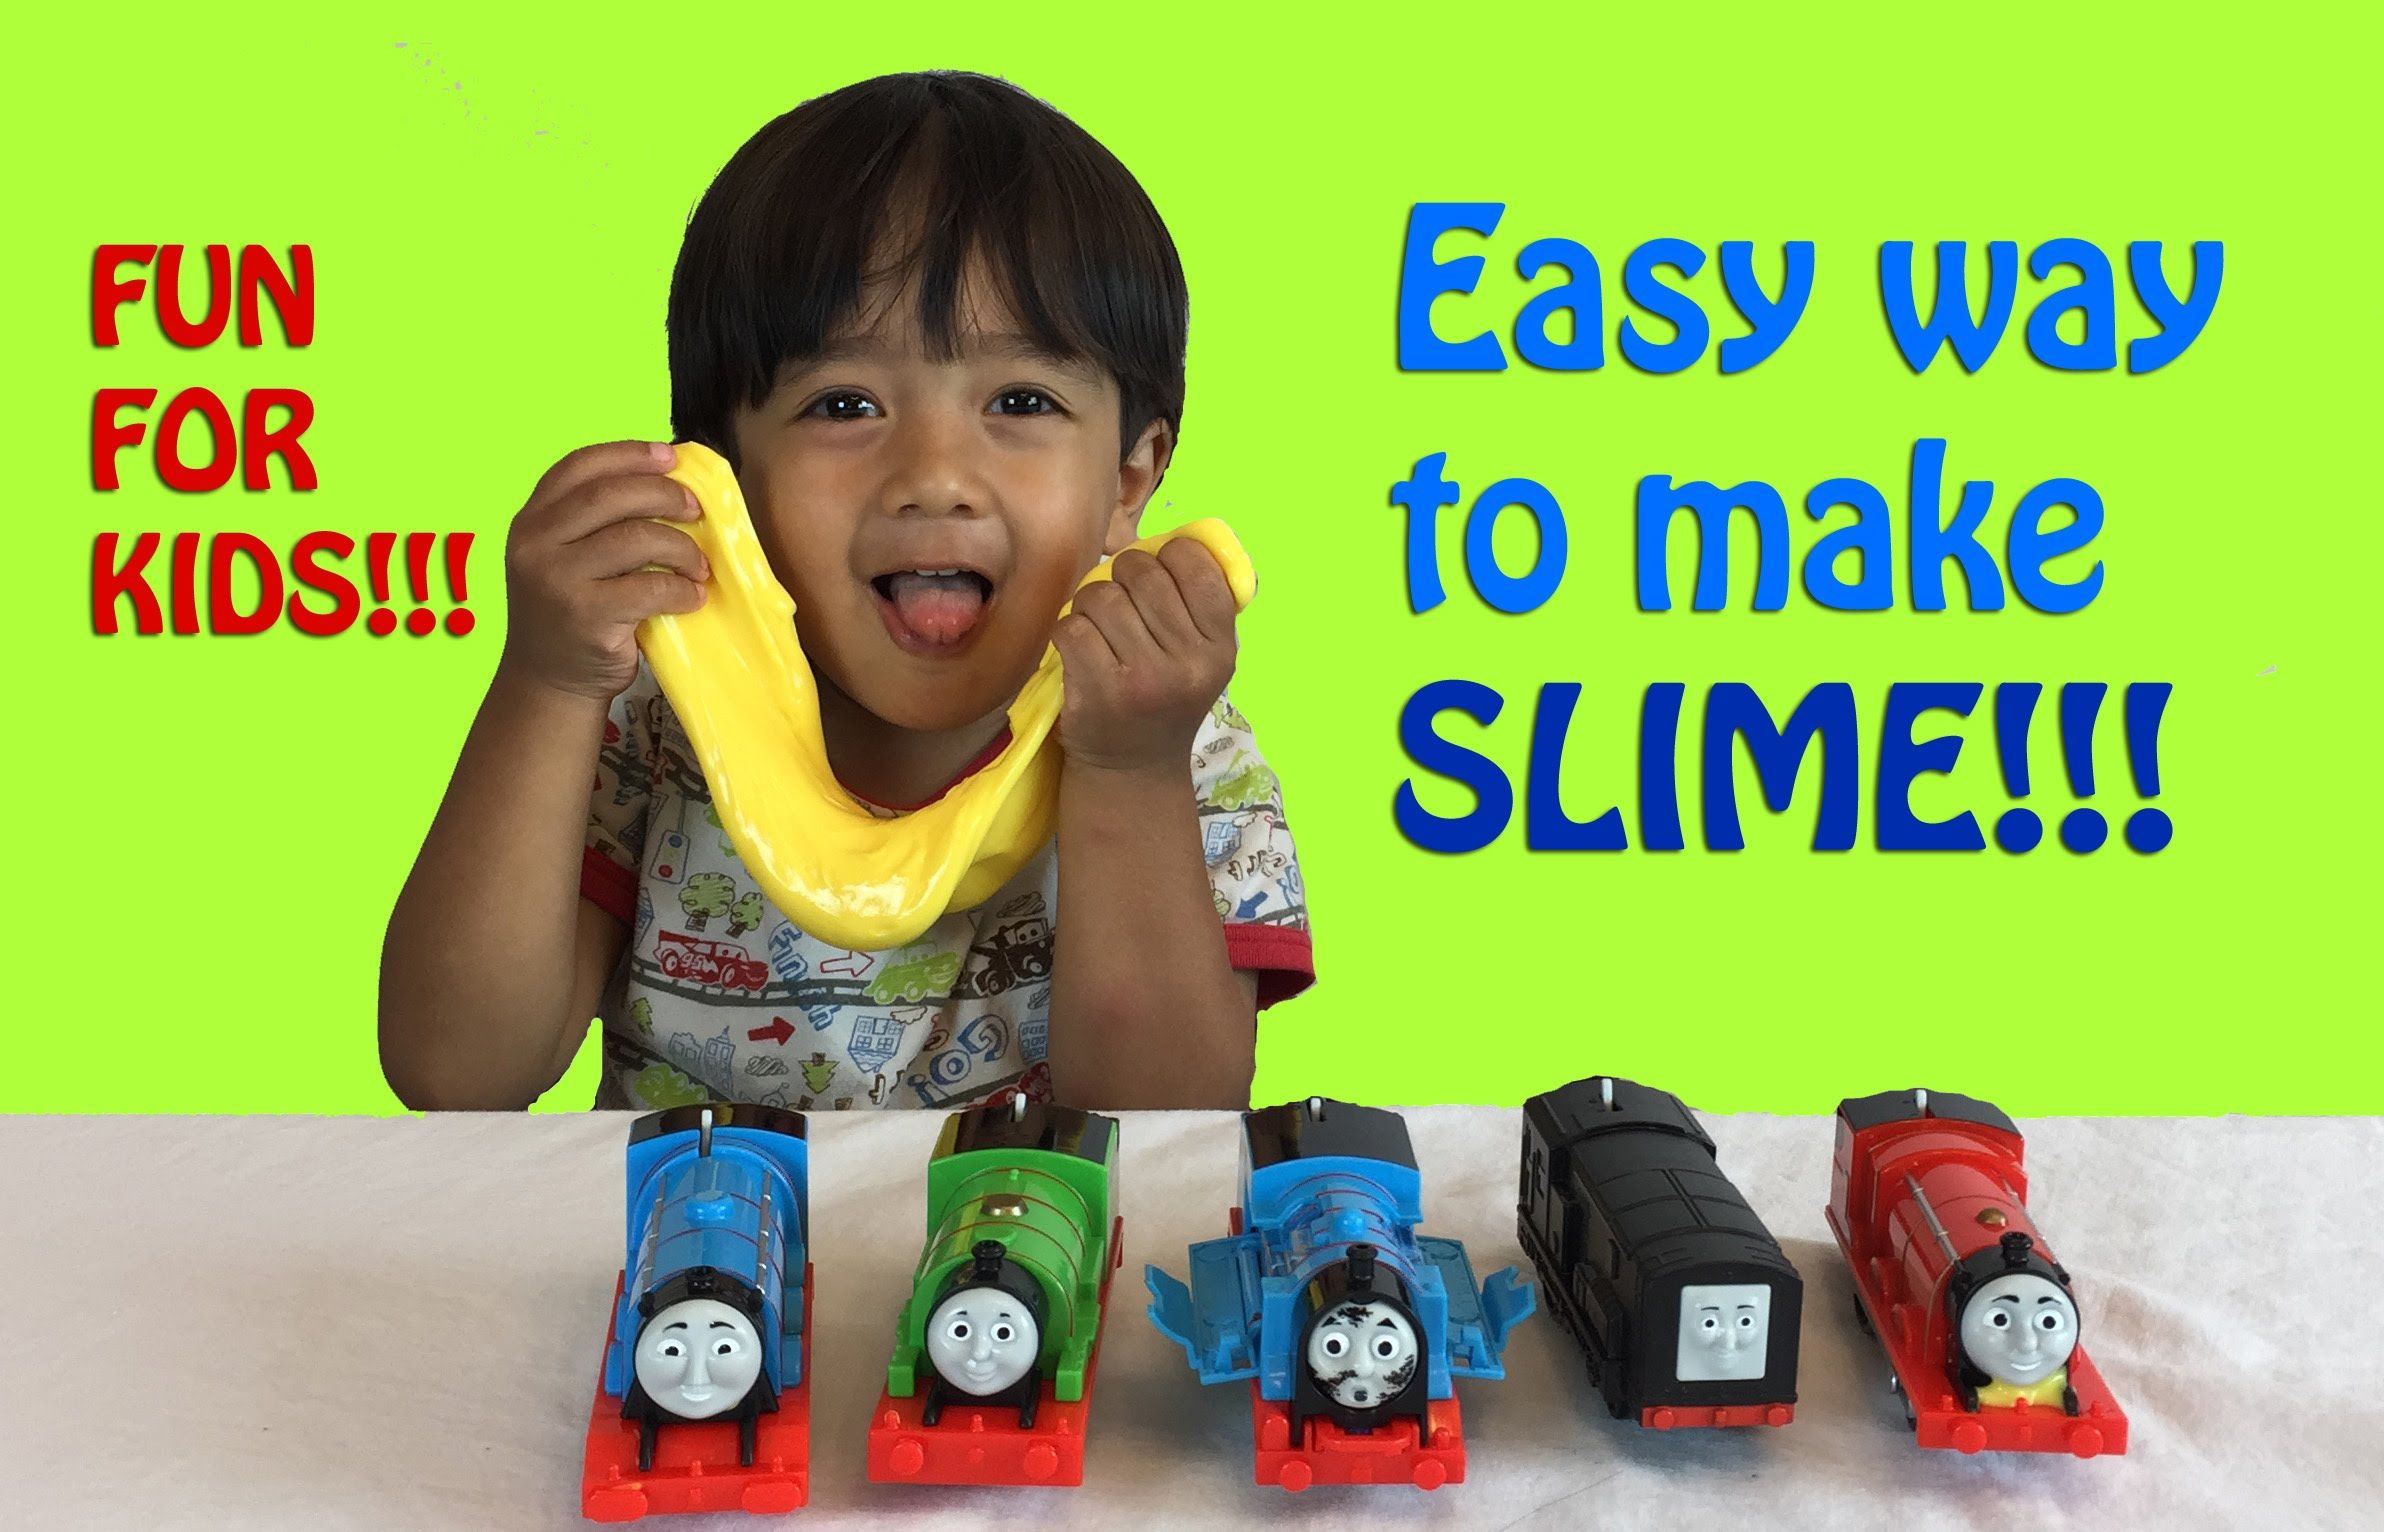 How To Make Slime Easy Science Experiments For Kids With Thomas Friends